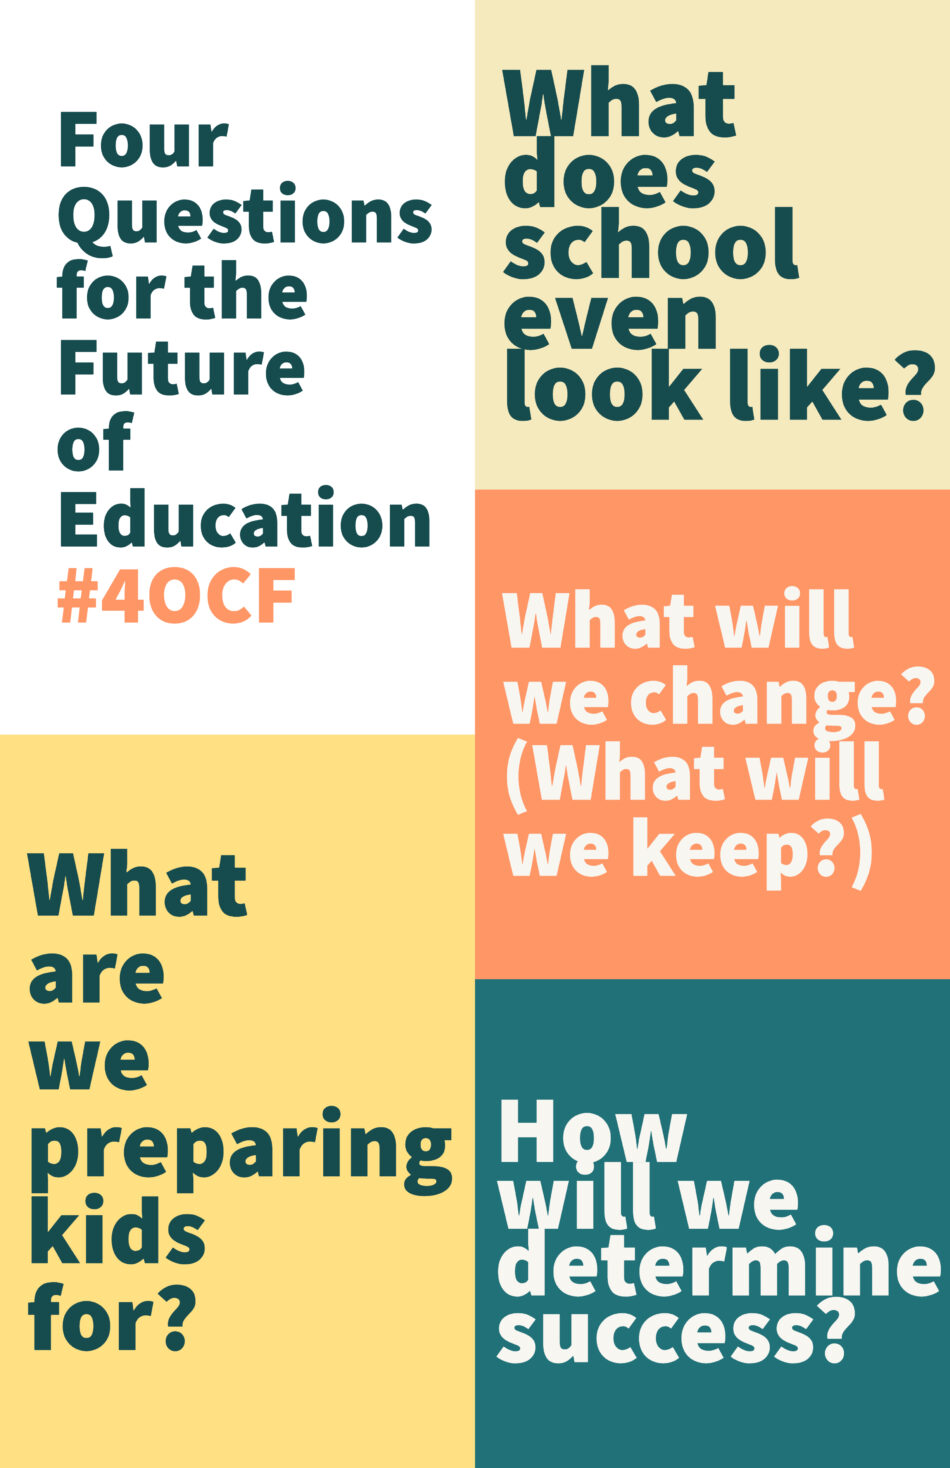 Four Questions for the Future of Education